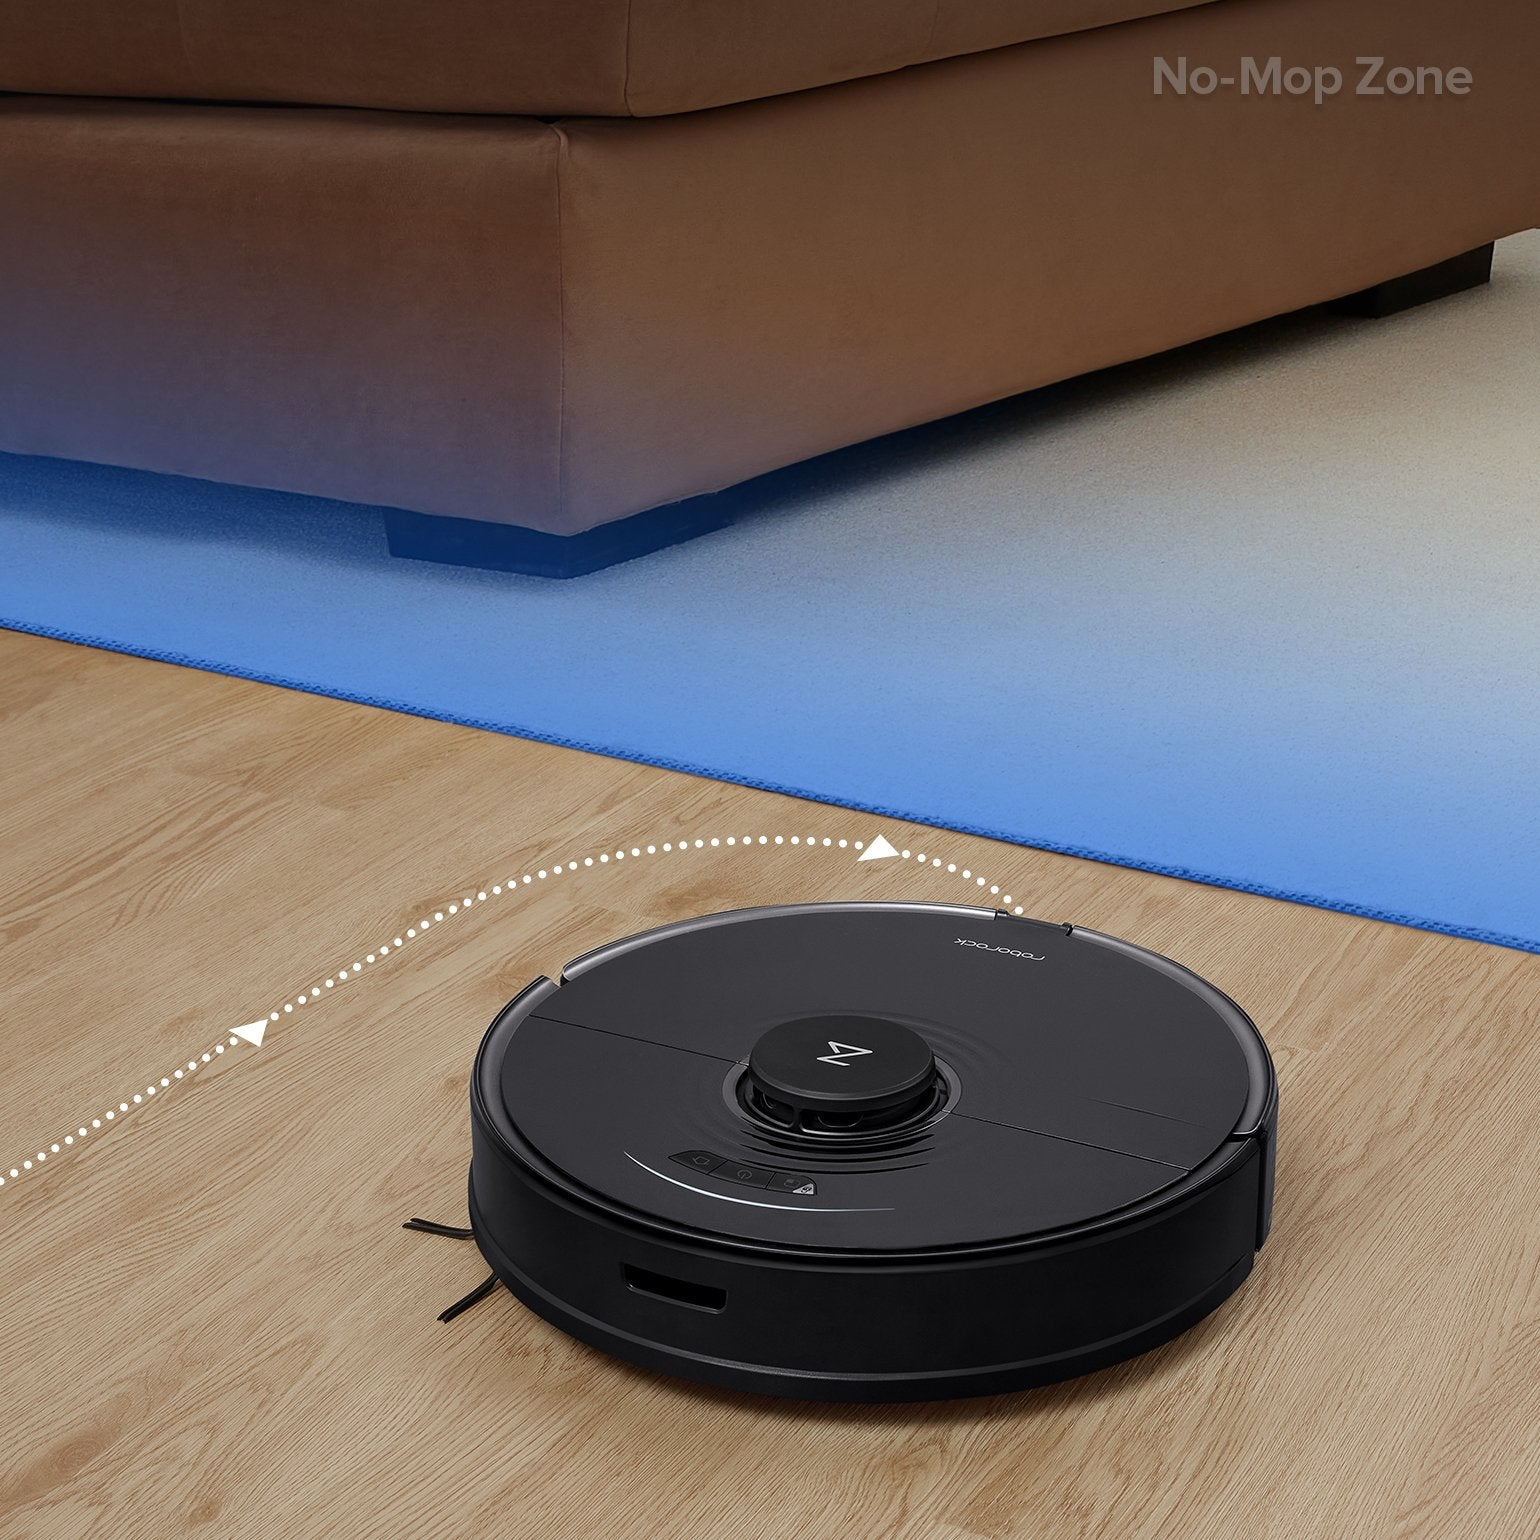 draw a no-mop zone right on the carpet to keep Roborock S7 away